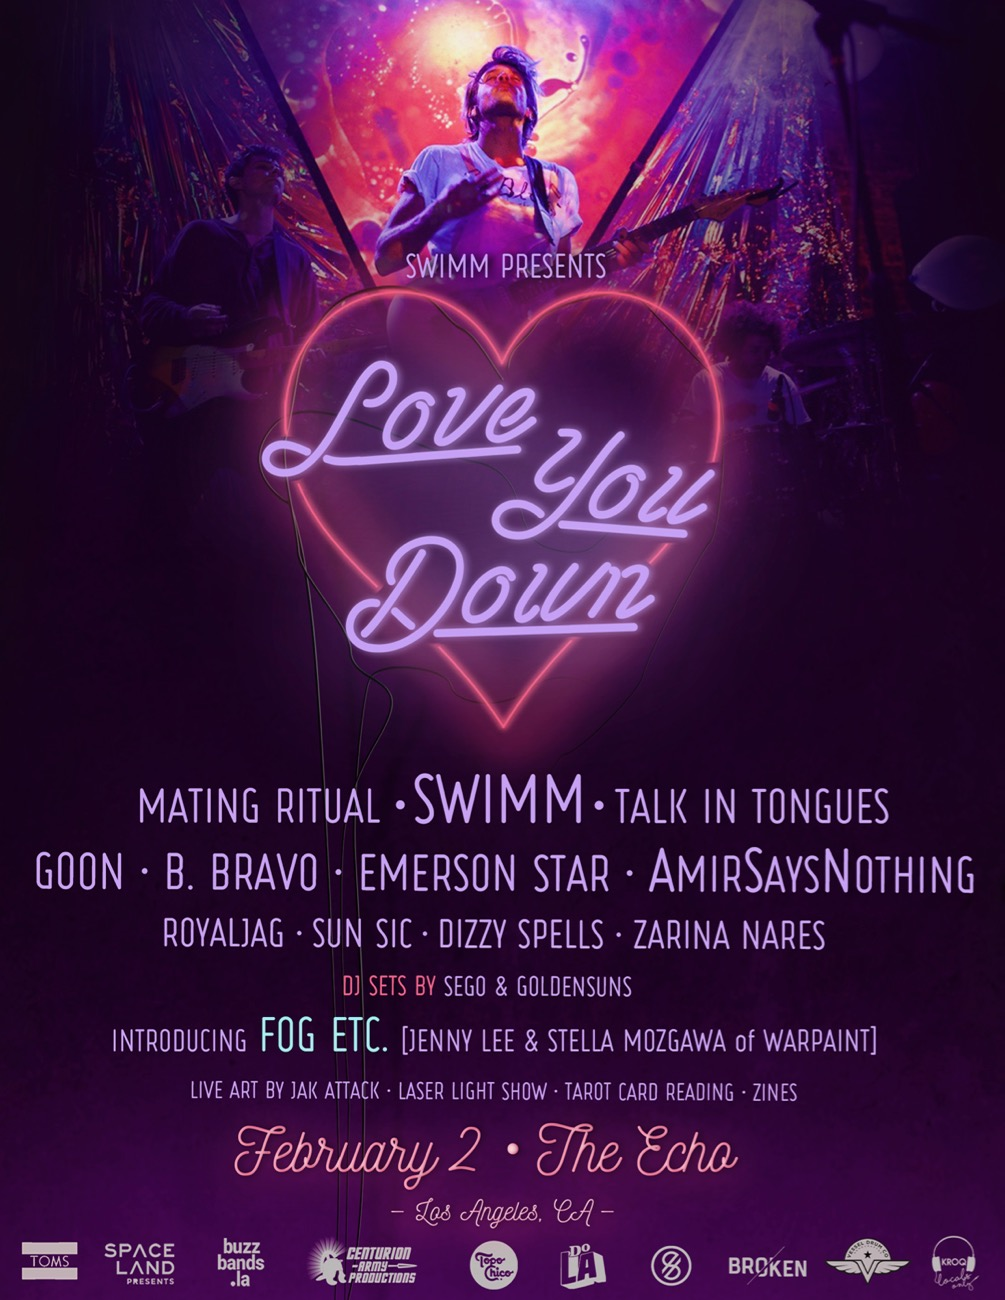 SWIMM presents Love You Down II.